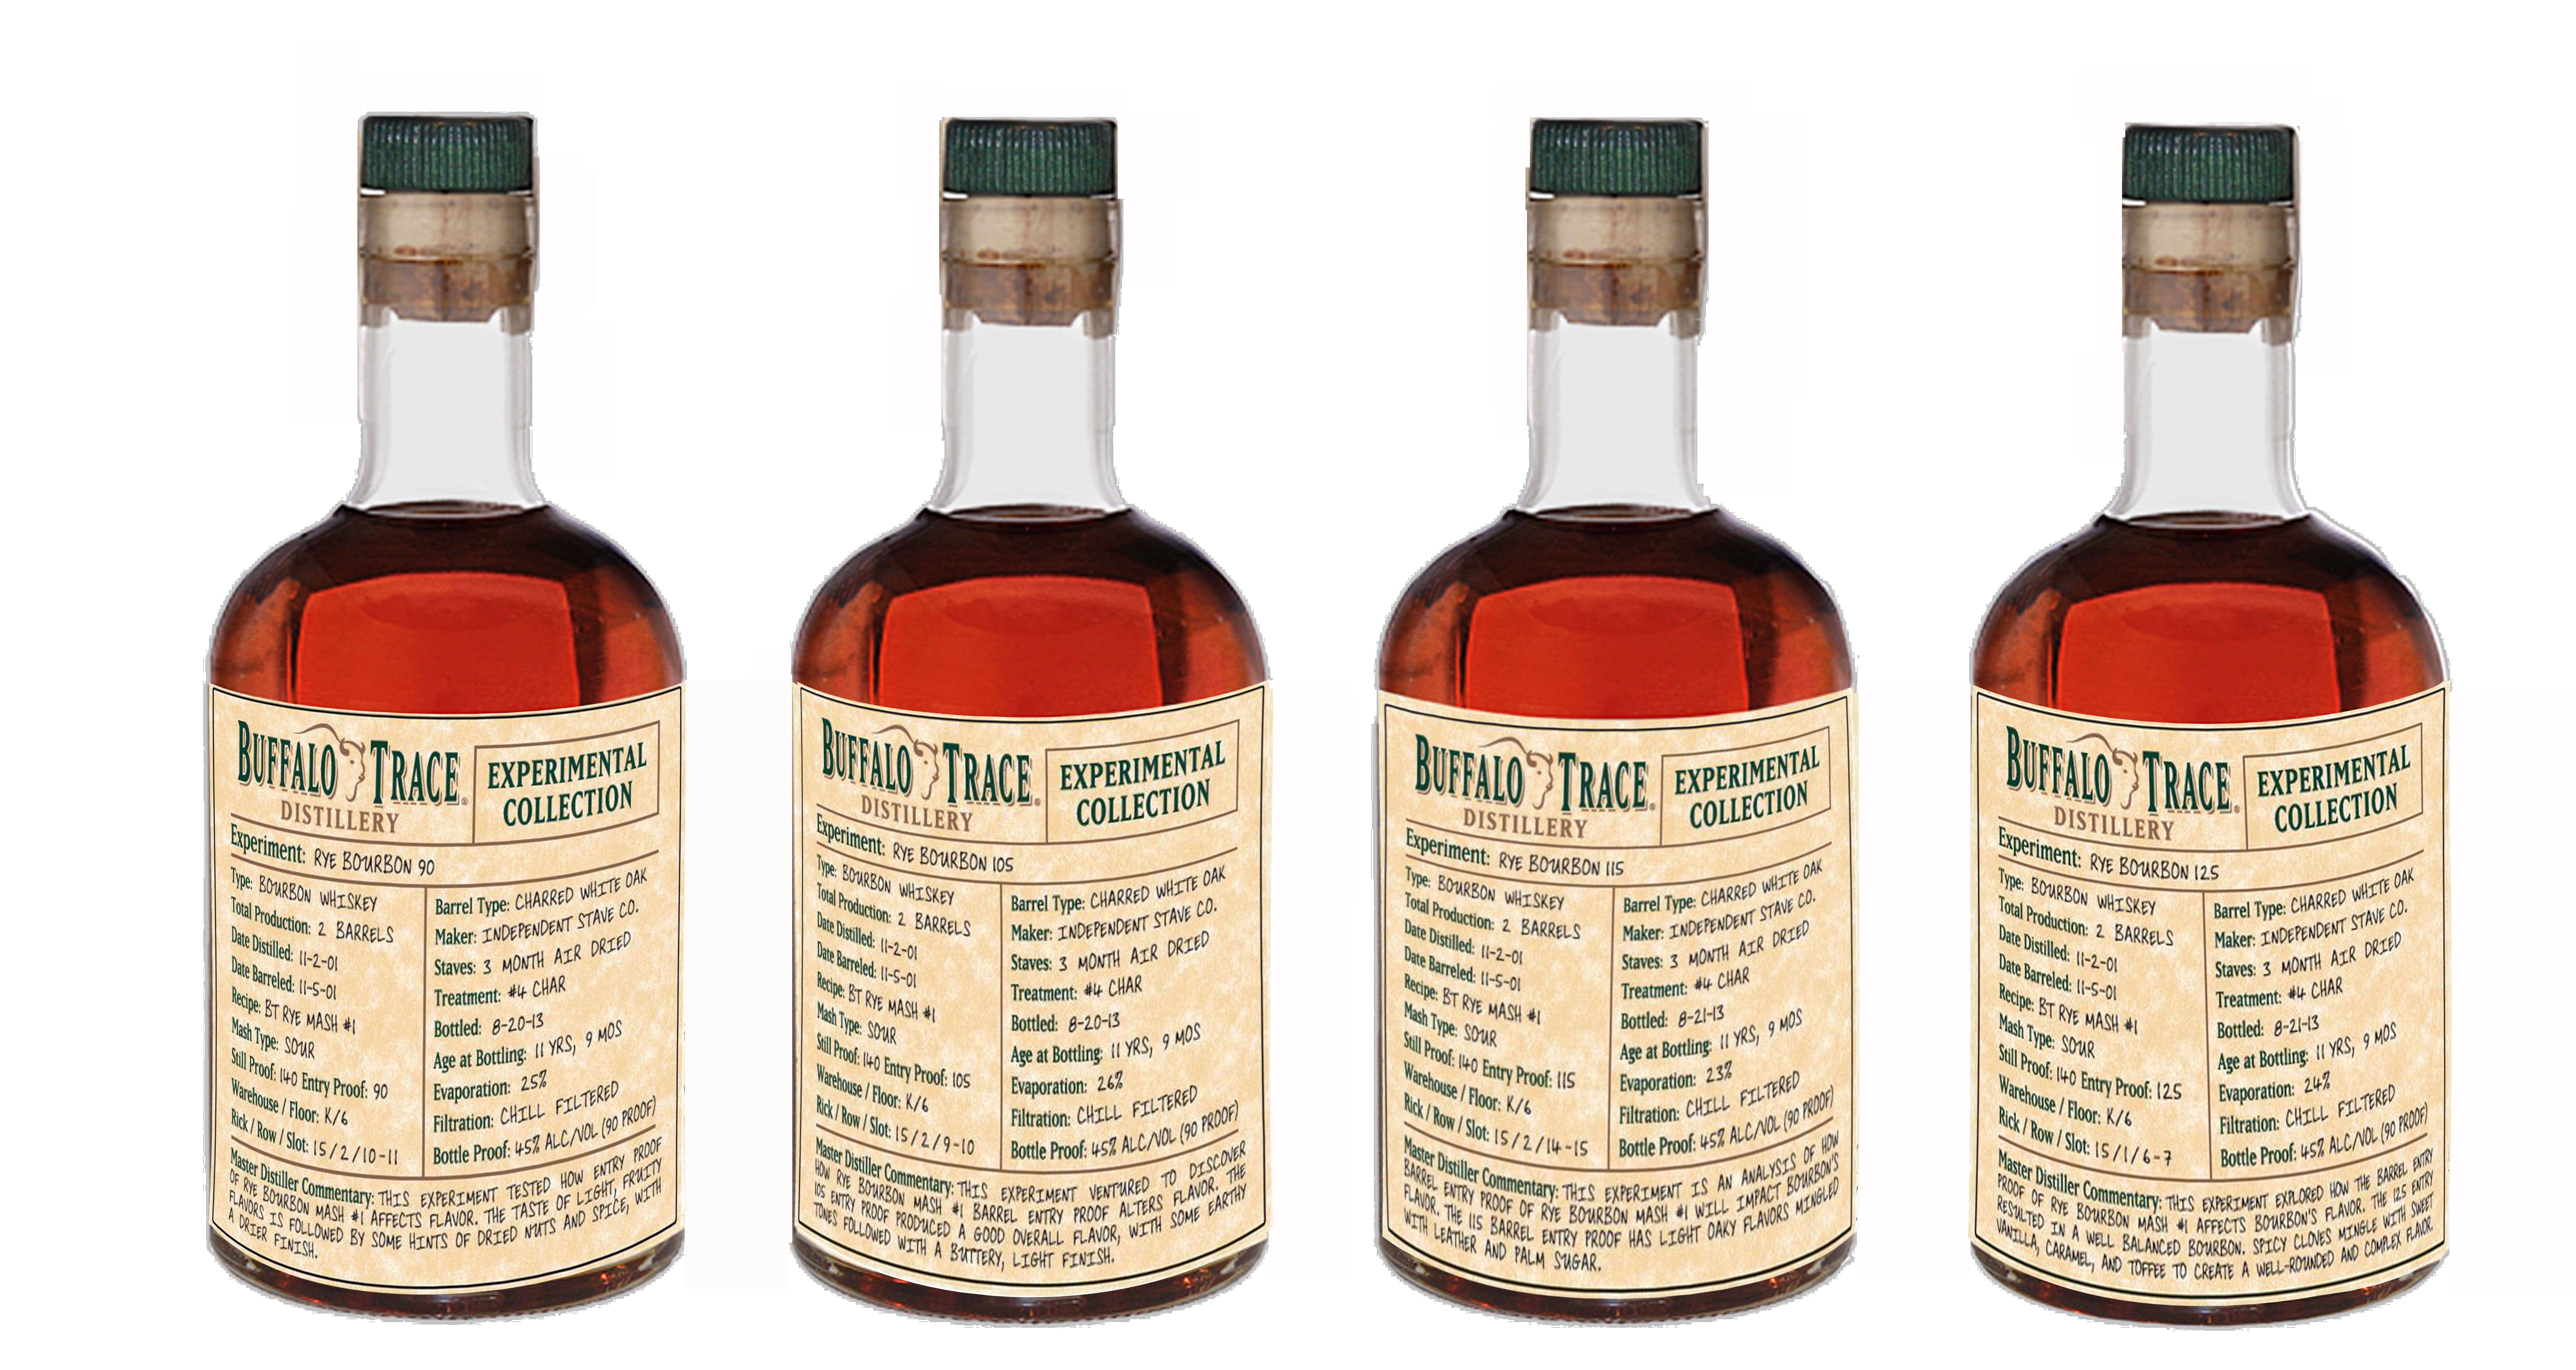 Buffalo Trace Experimental Collection - Rye Bourbon 90 Entry Proof